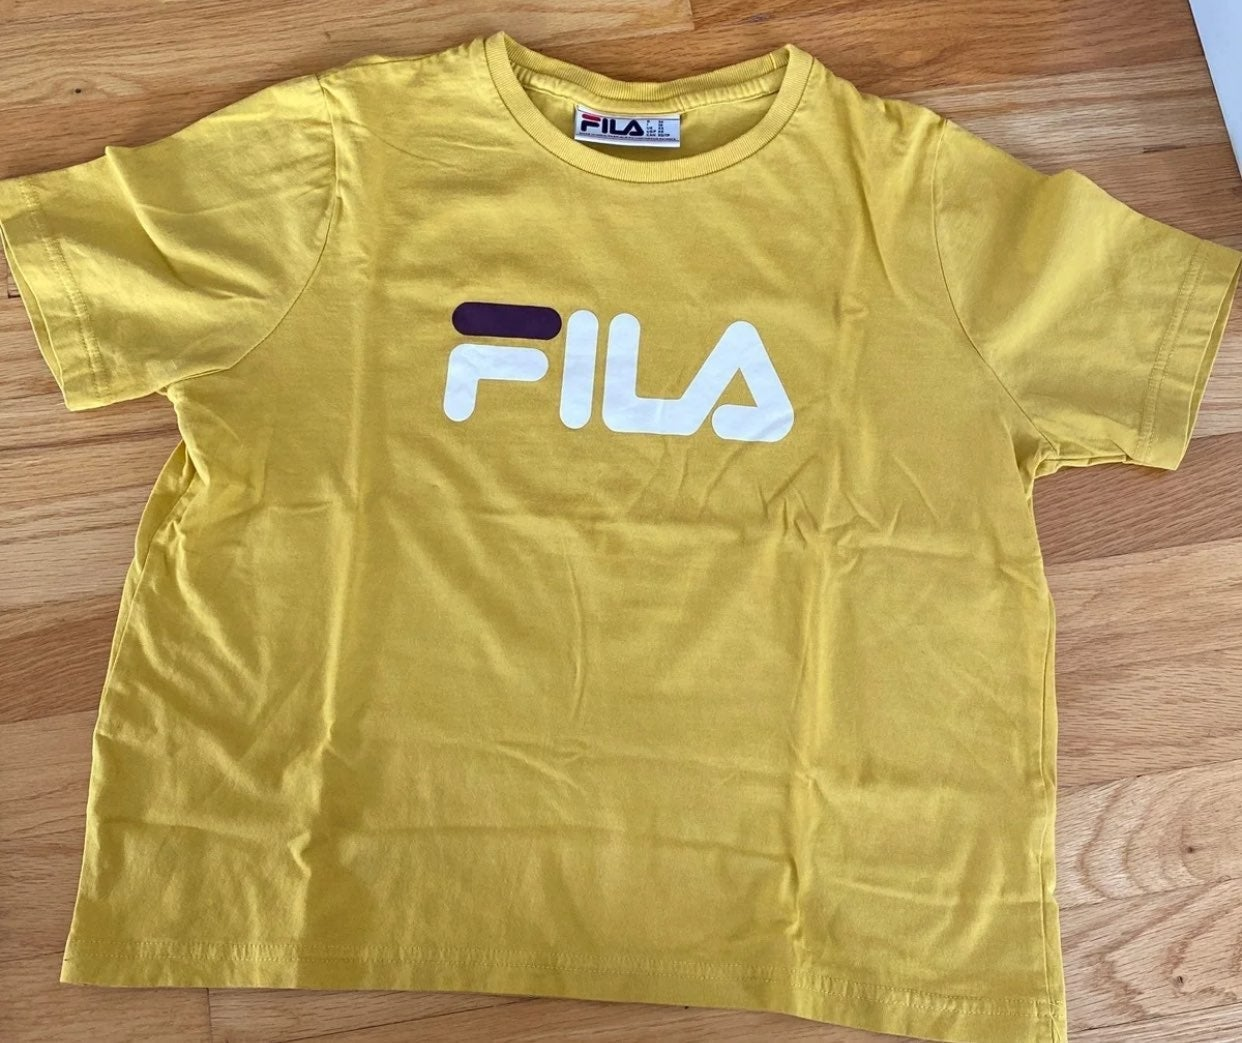 Fila Women's Tee Shirt